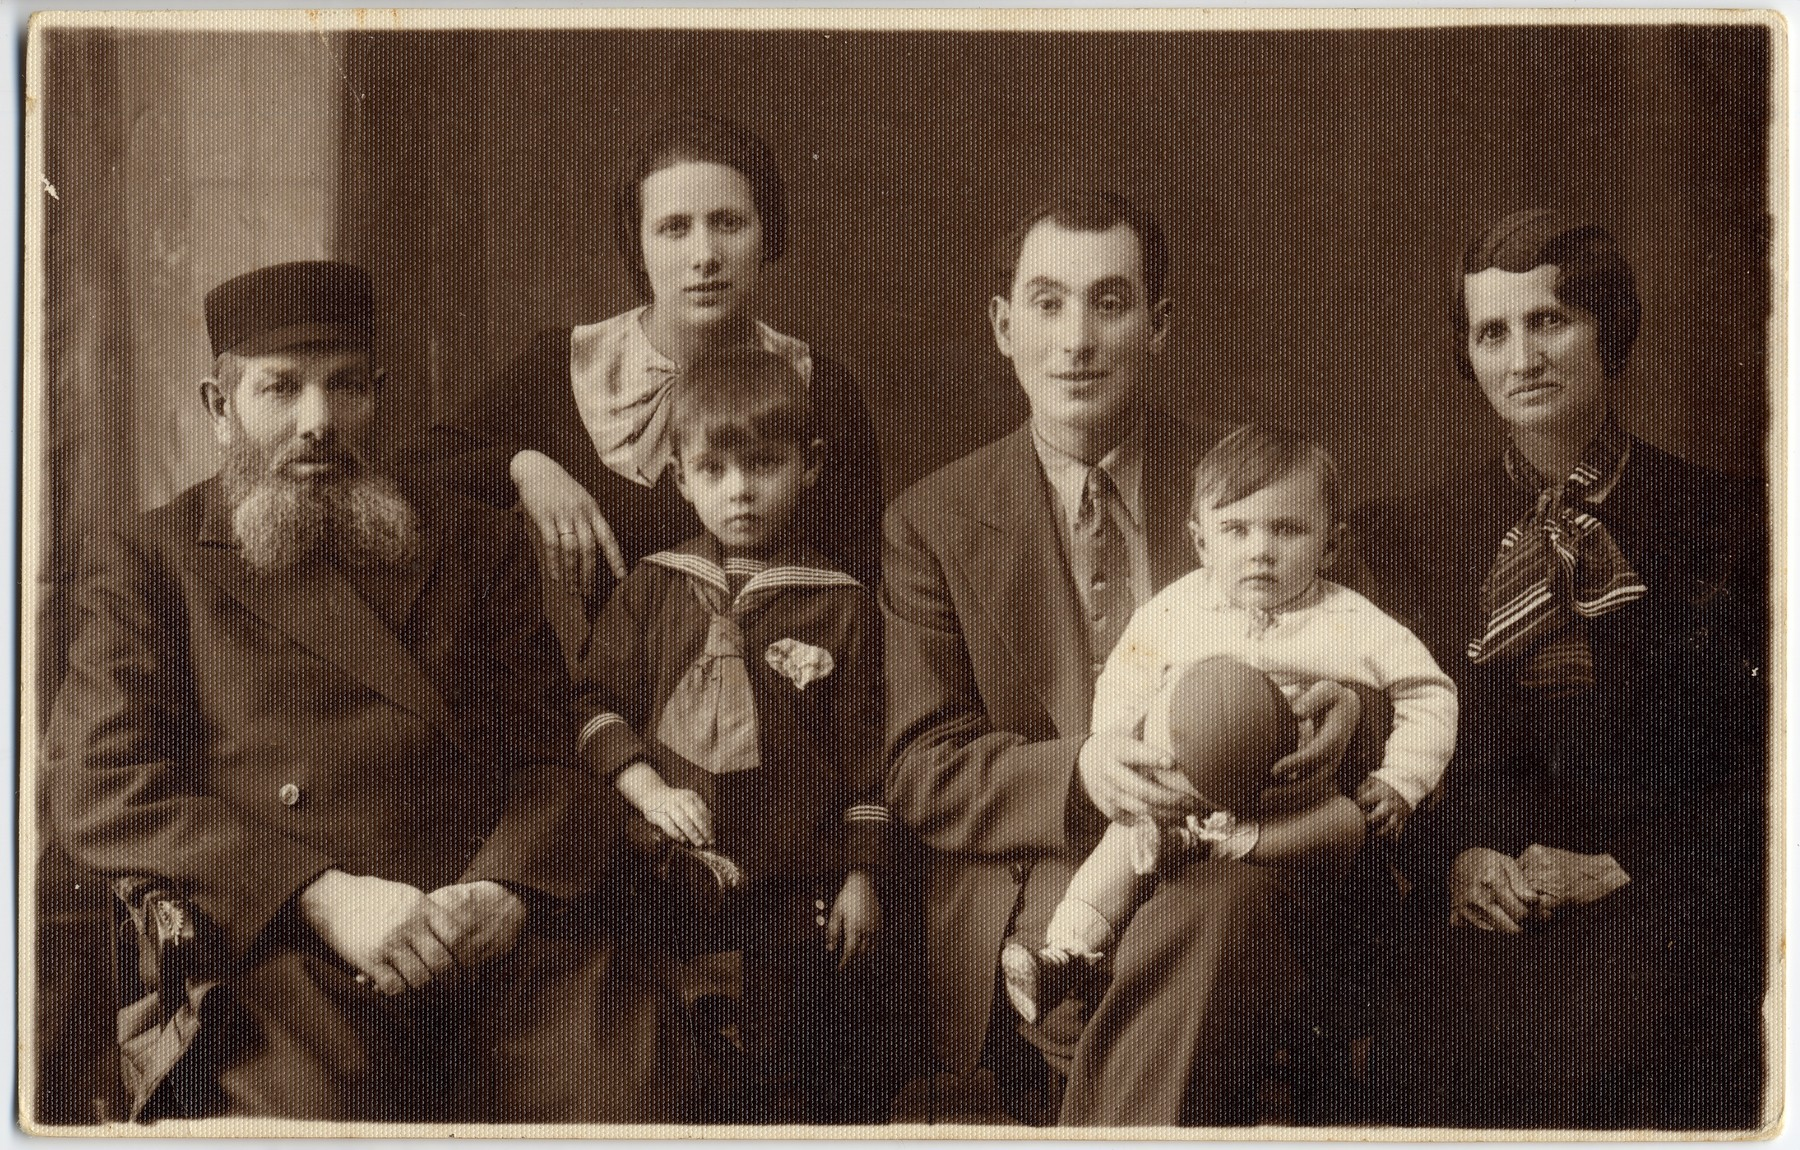 Studio portrait of a Jewish familiy in prewar Poland.   Pictured are members of the Berlinska or Fajtlowicz family.